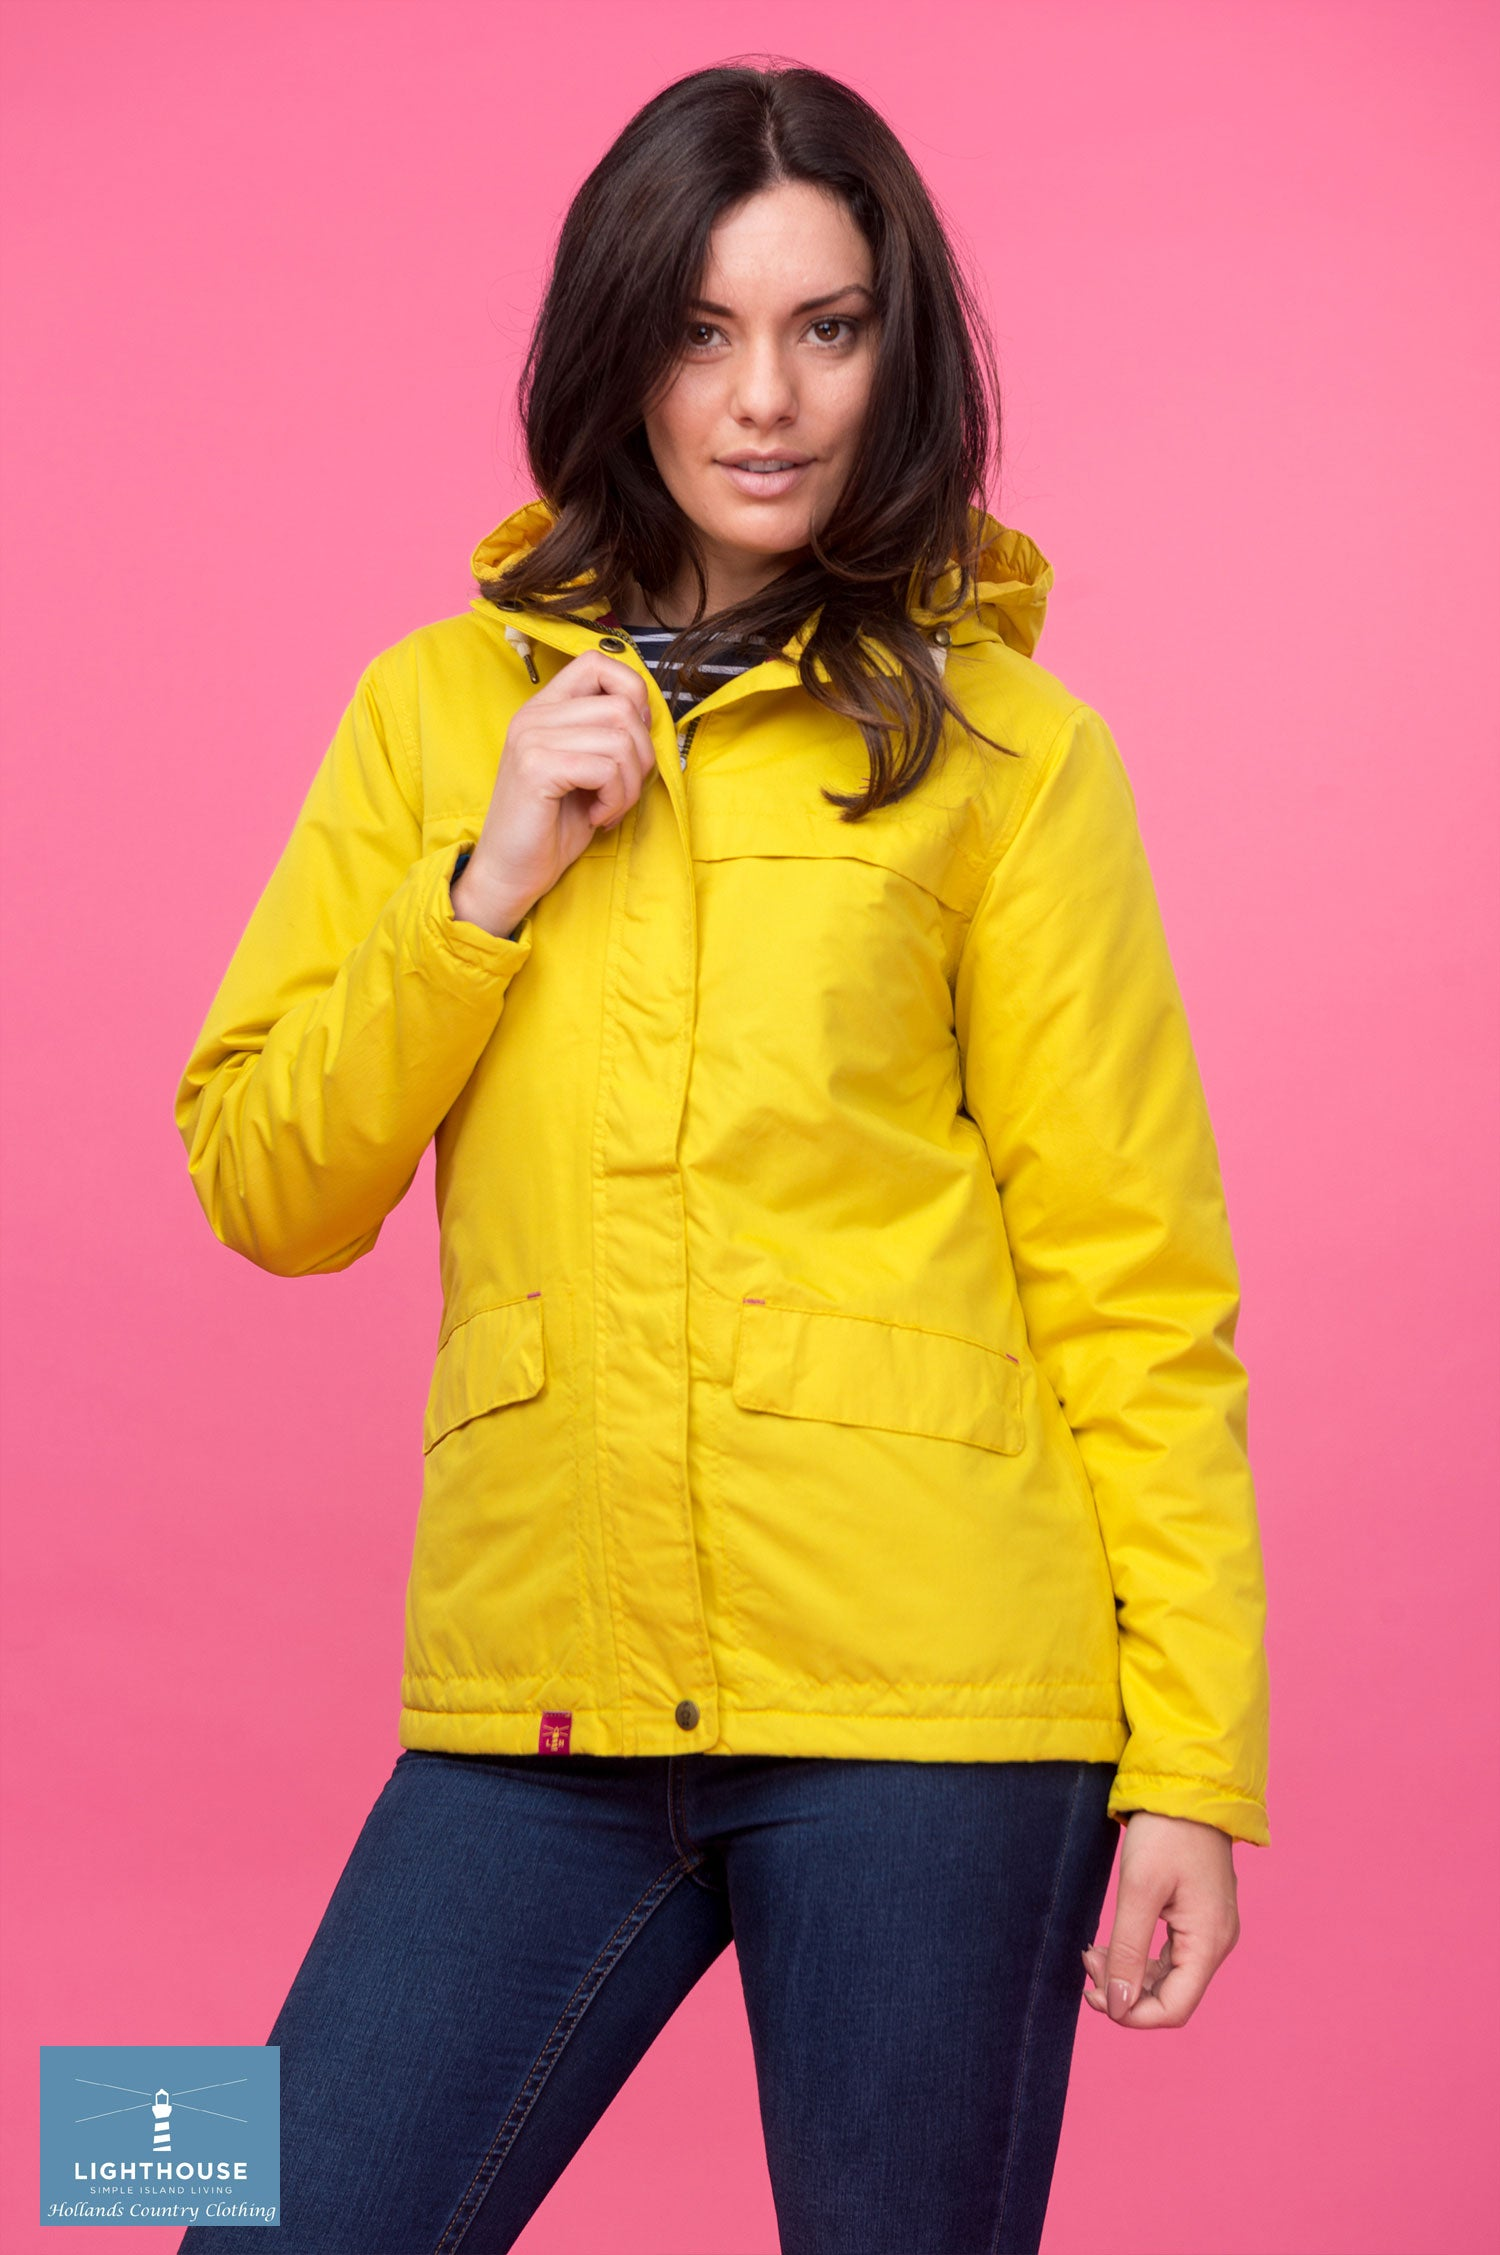 bright yellow Beaufort Waterproof Jacket by Lighthouse